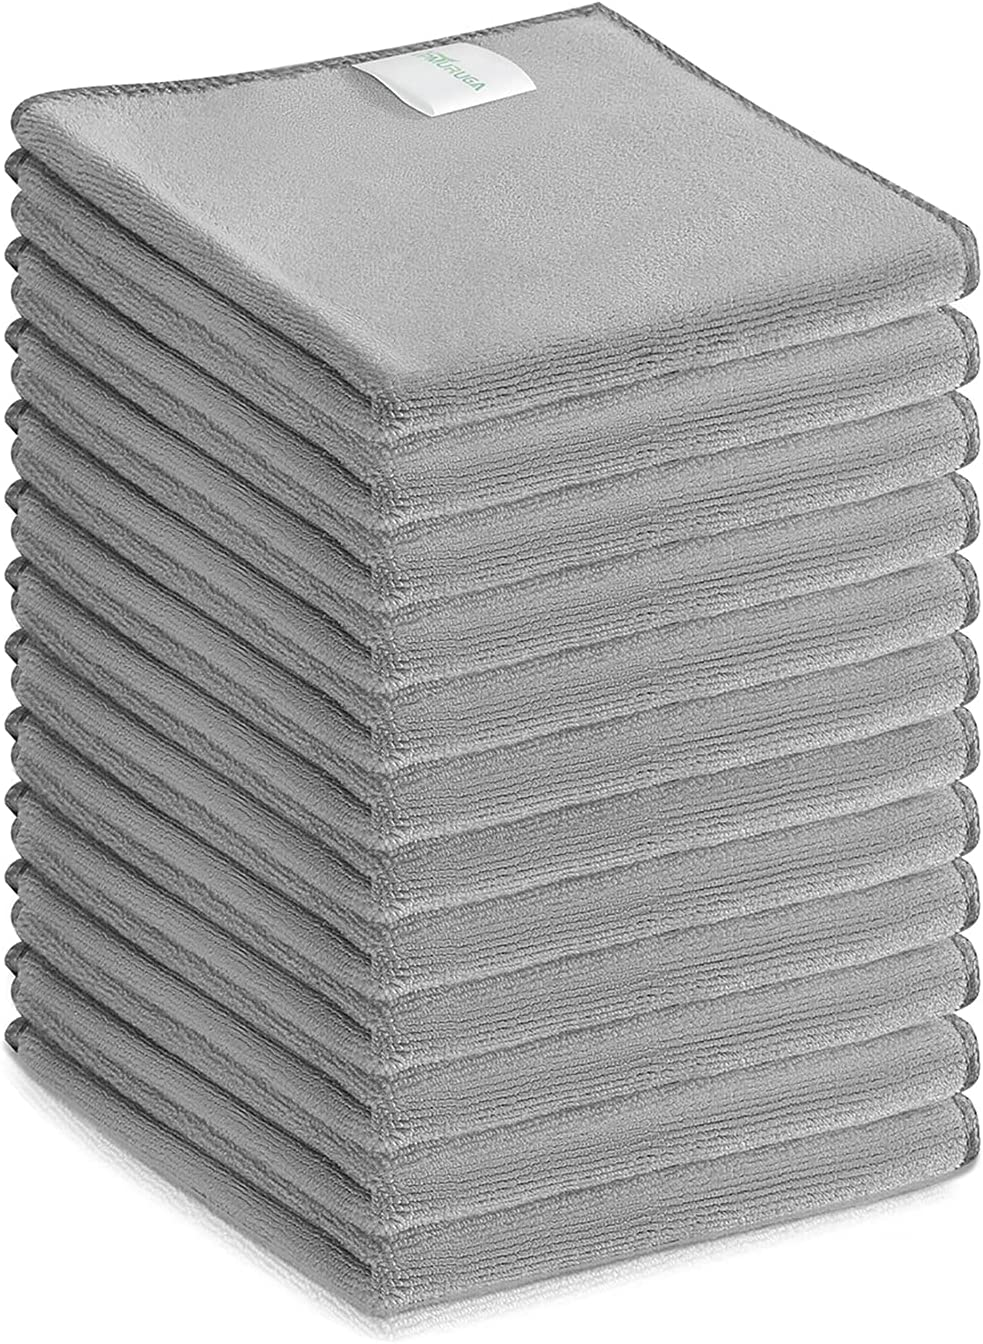 Microfiber Cleaning Cloths | Easy Clean Cloth All-Purpose Dust Dirt Cleaning Rags| Super Absorbent Dish Cloth Kitchen Towels| Ultra Soft Hand Towel Makeup Remover Cloth| (Pack of 12) Grey